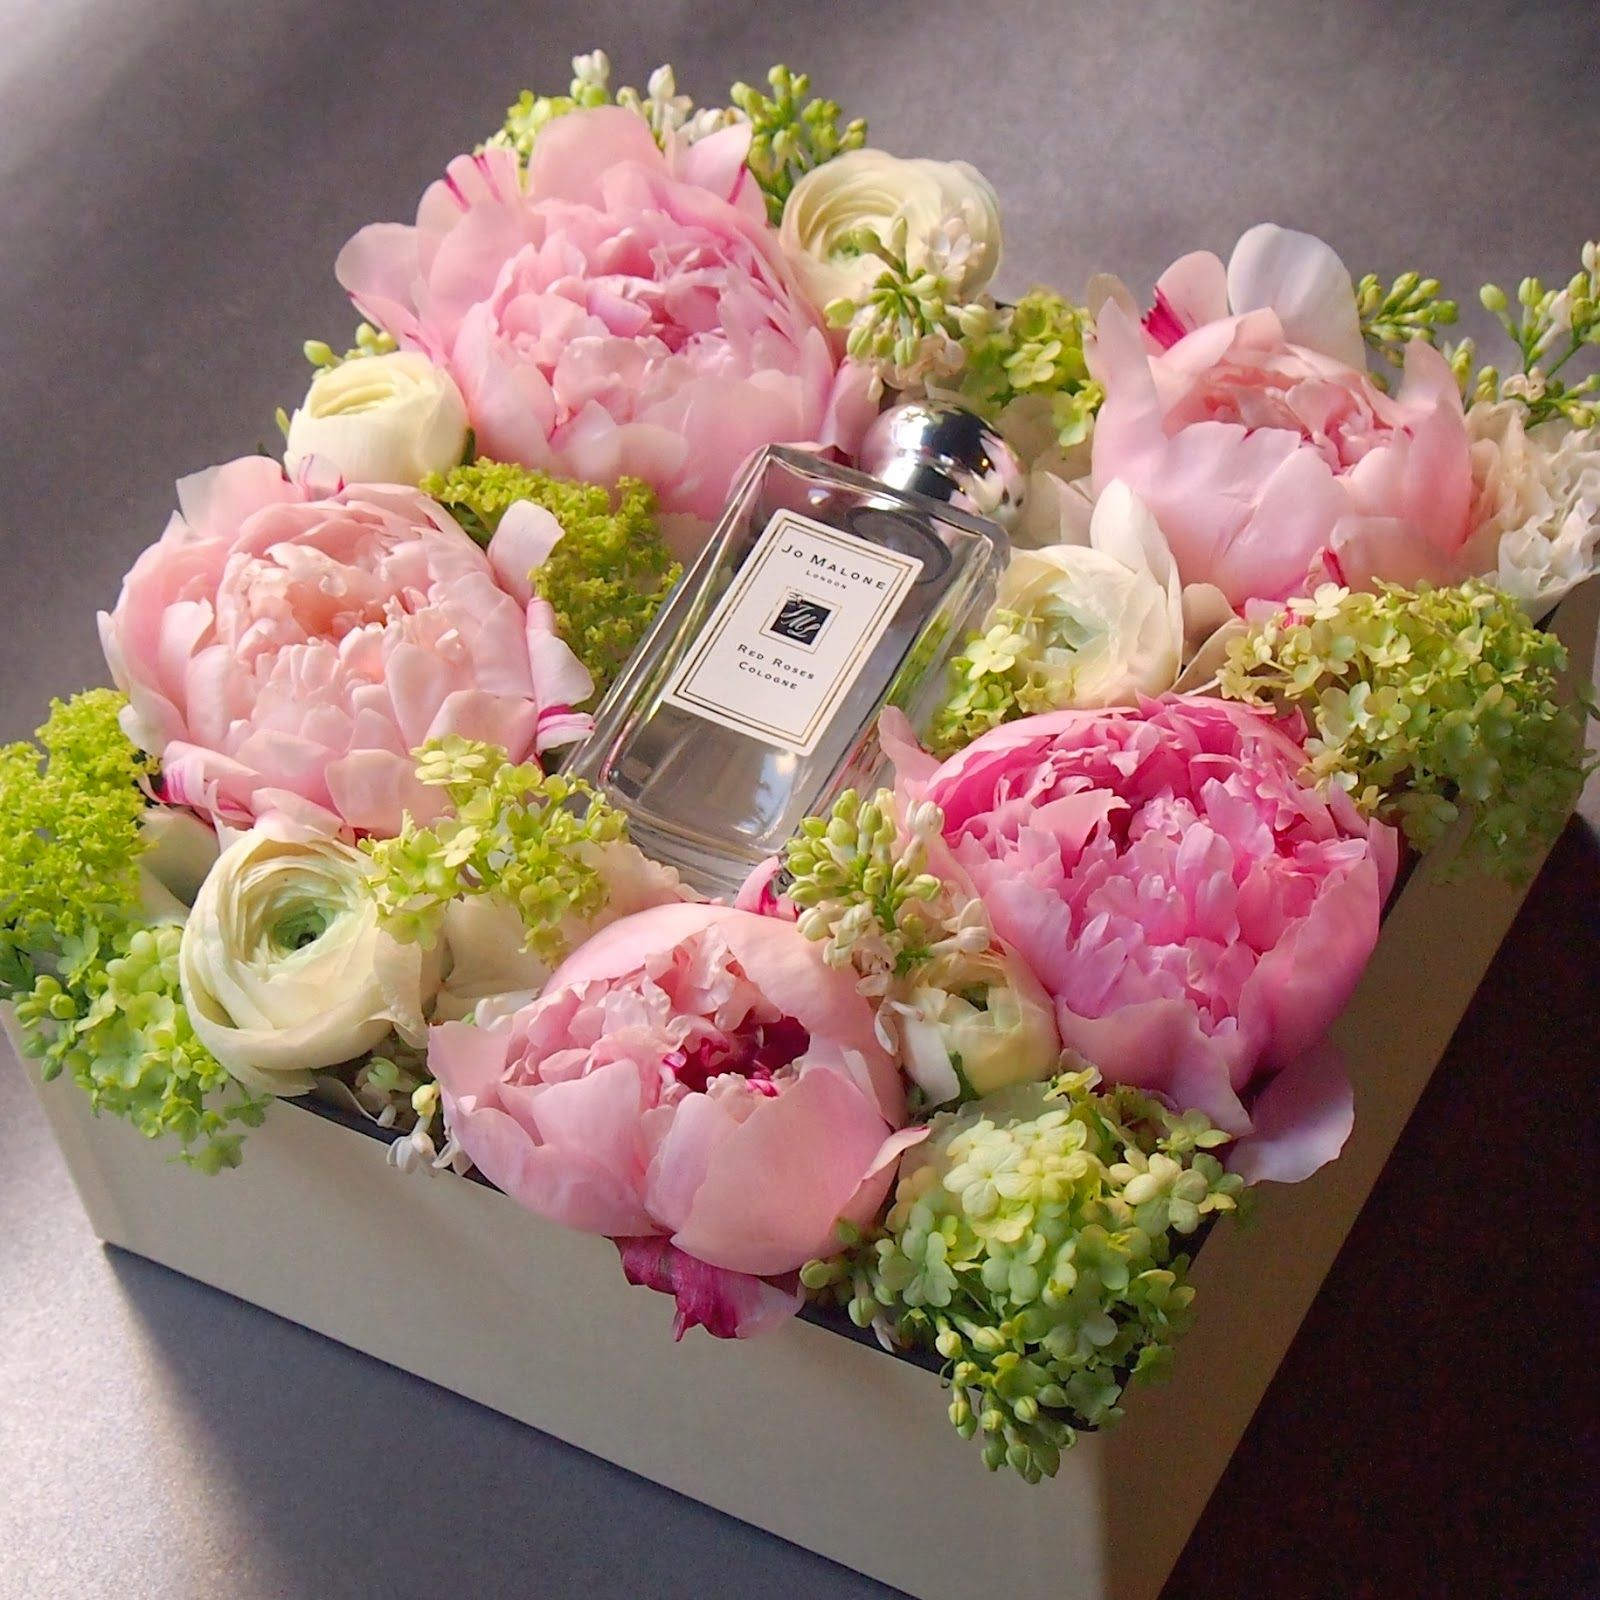 Flowers In A Box Peony Jomalone Gardening Faves Pinterest